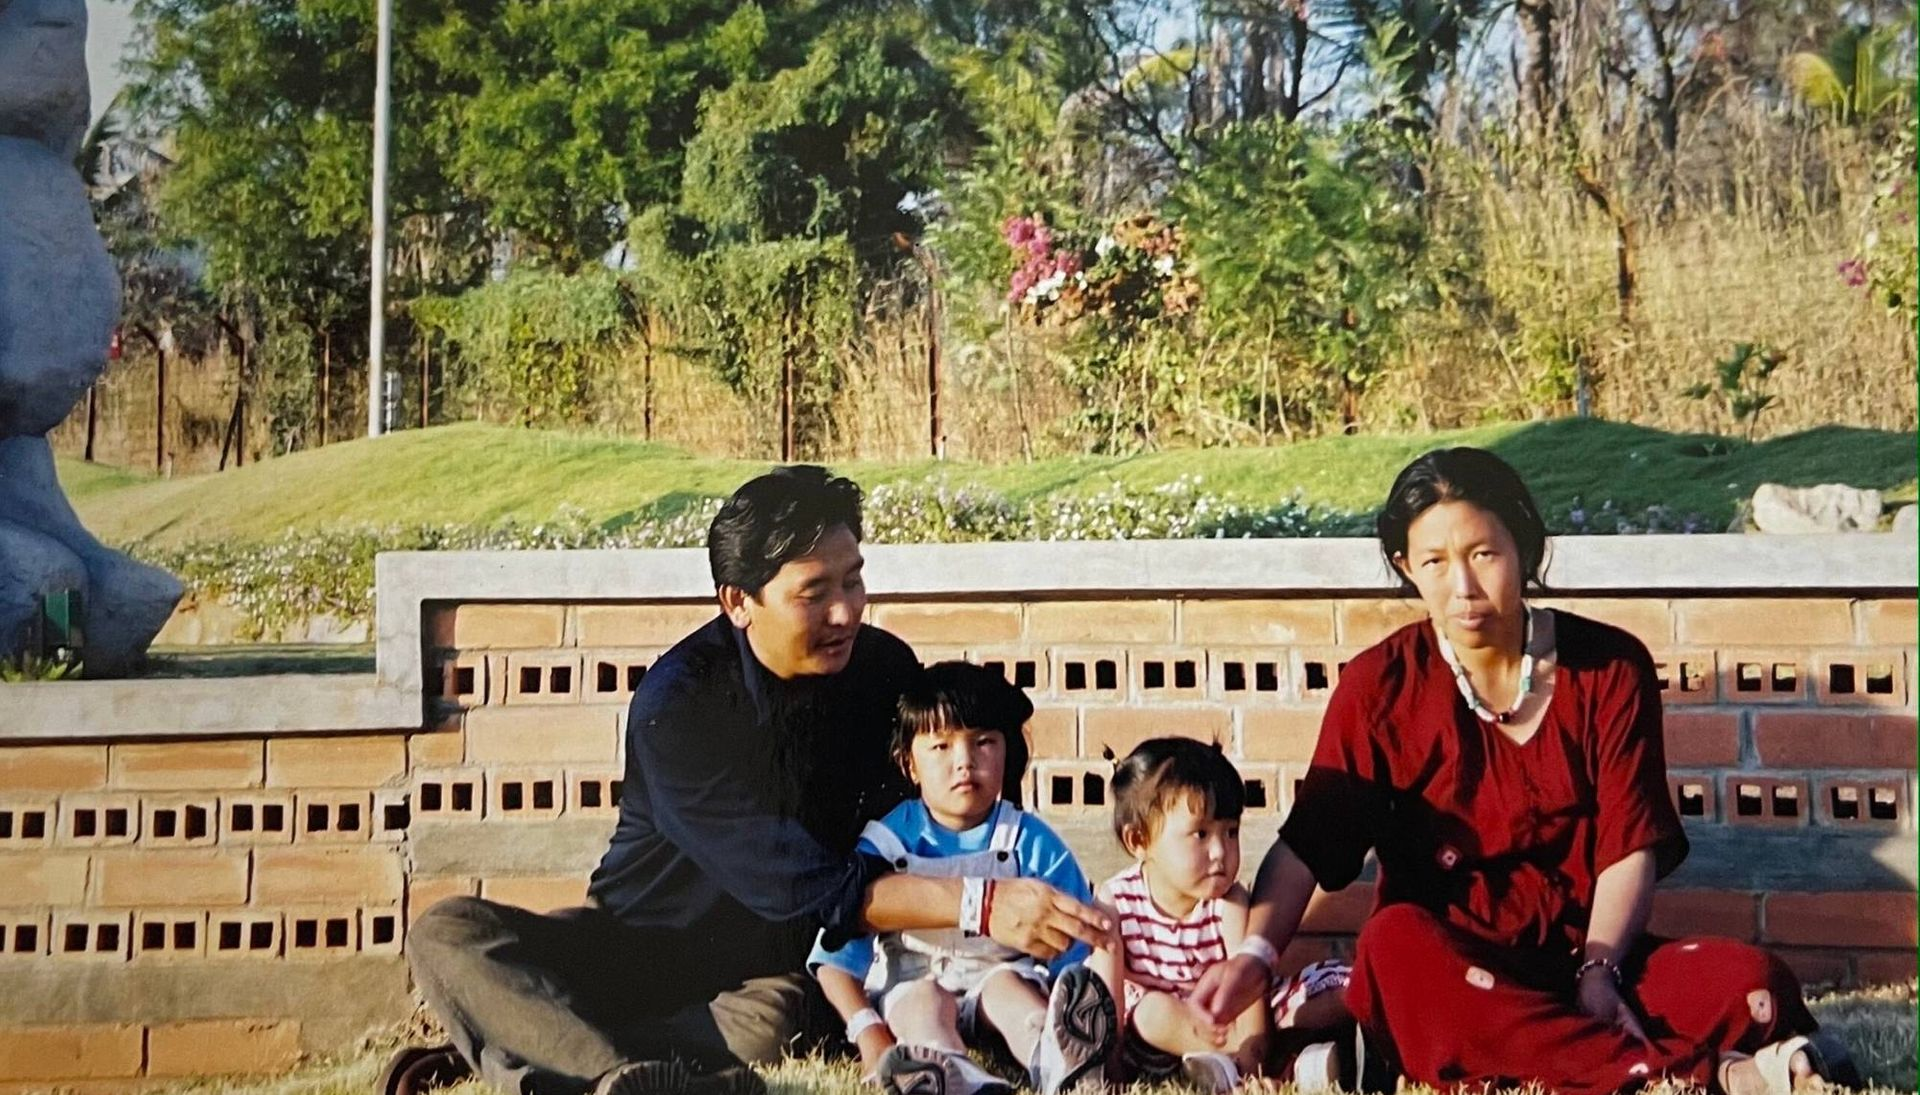 Two parents and two children seated at a park